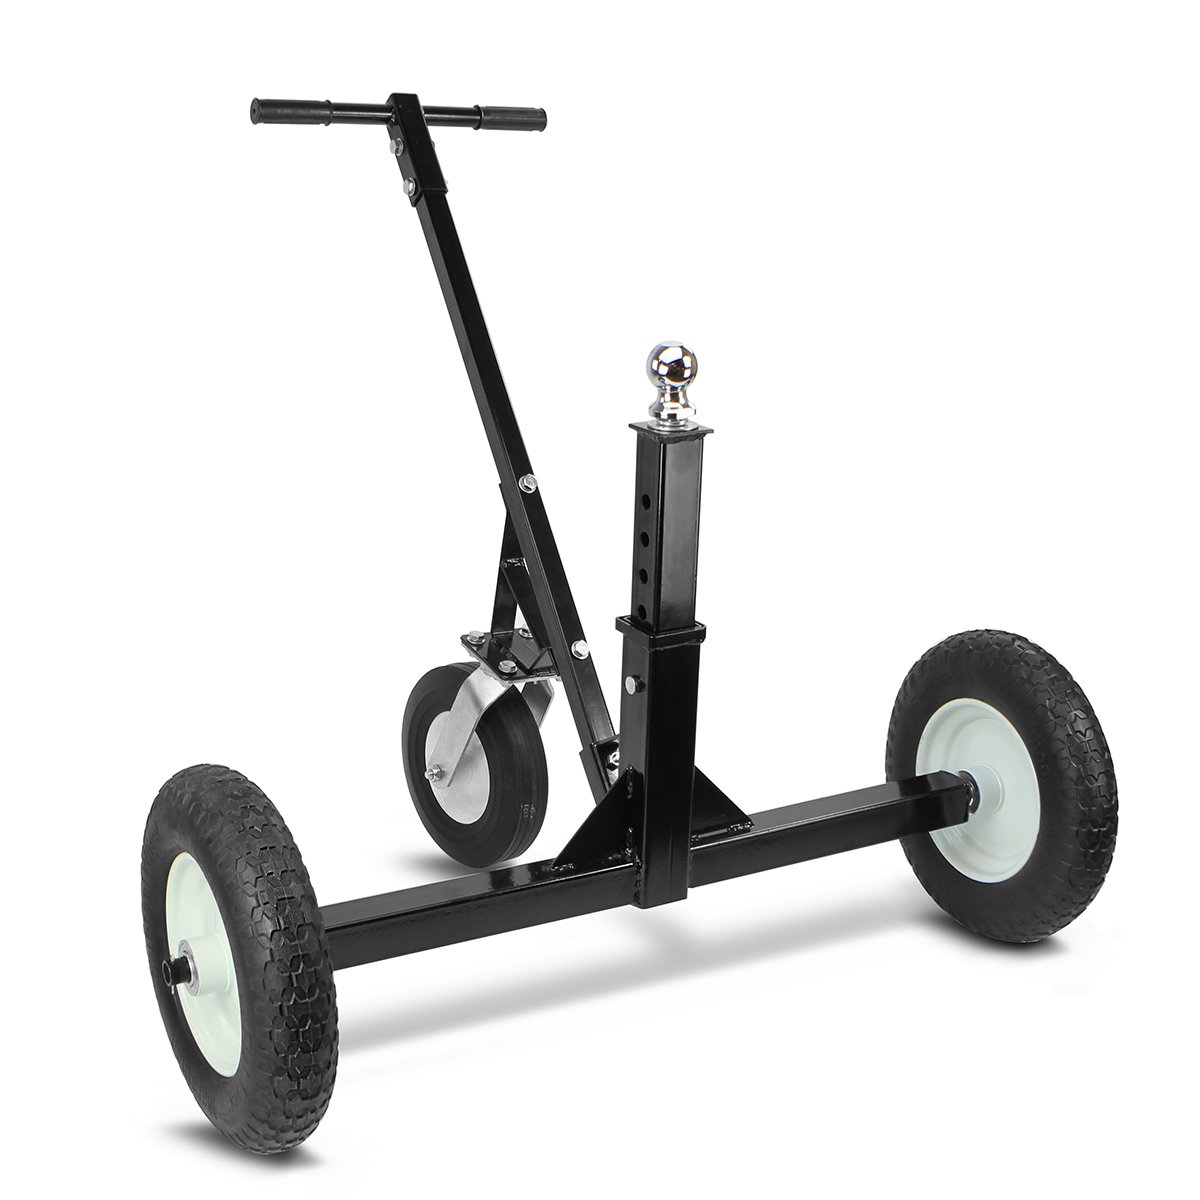 1000Lb Adjustable Tow Hitch Trailer Dolly Cargo Utility